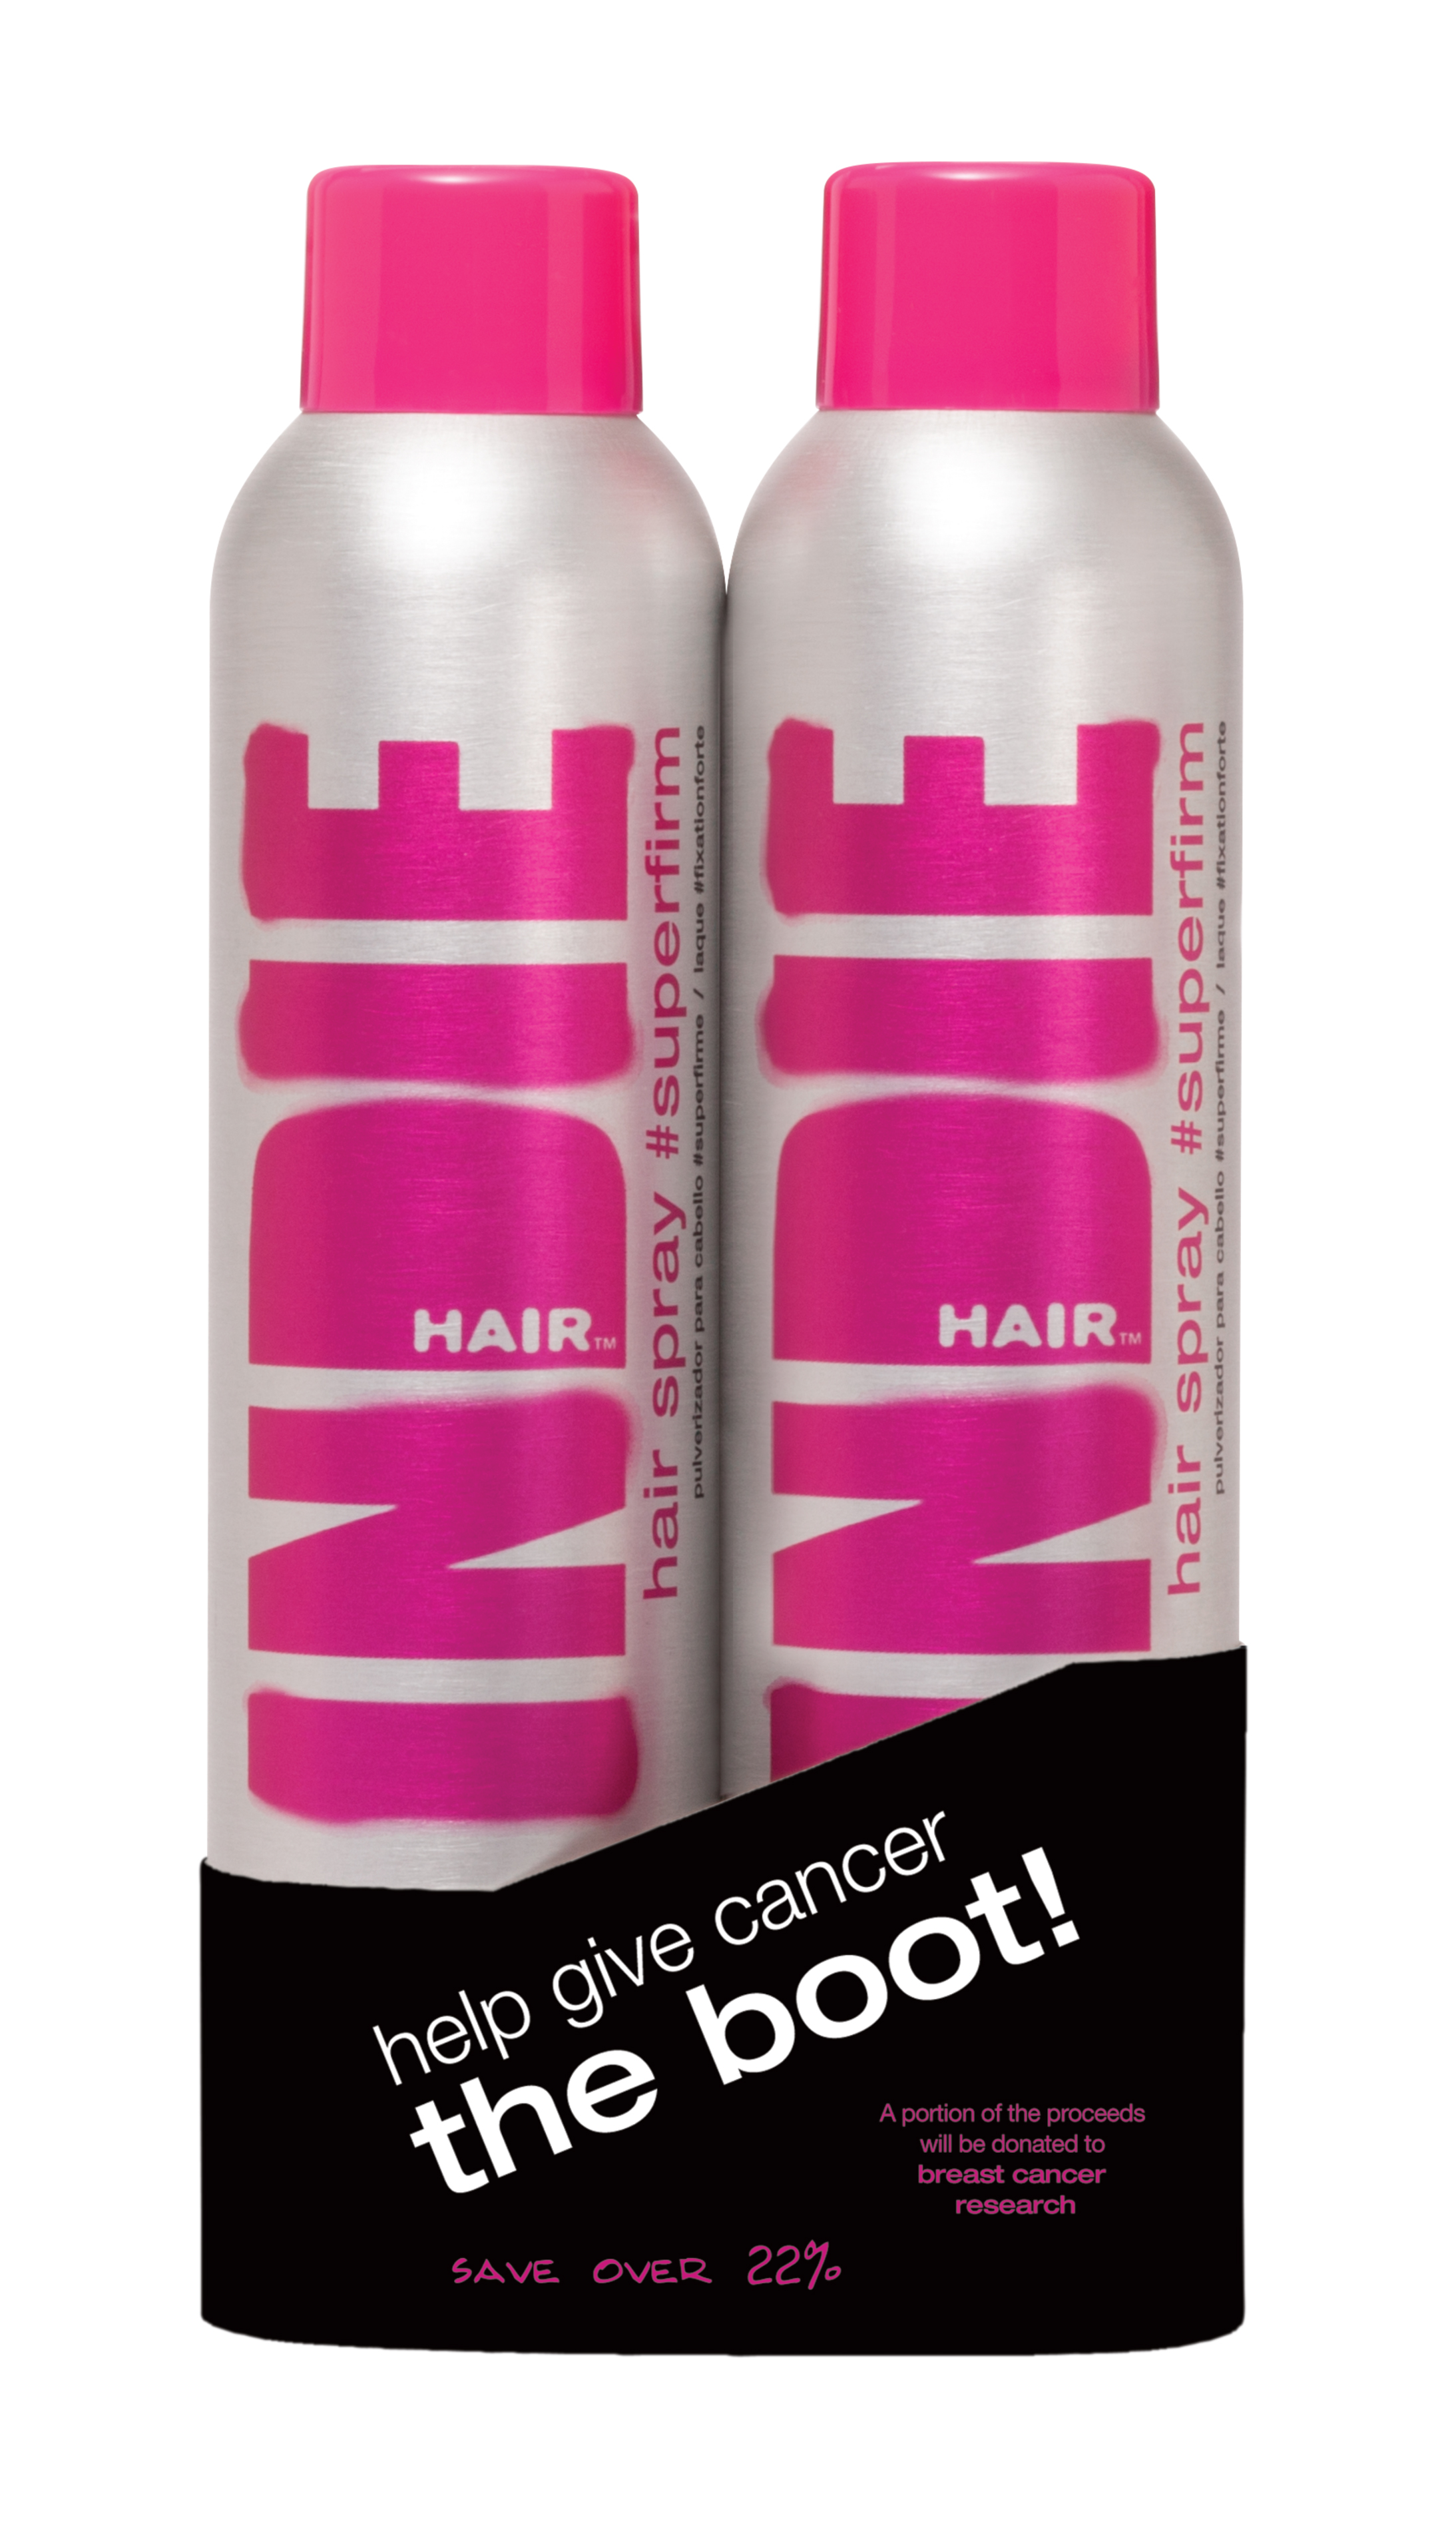 Indie Hair limited-edition duo infused with My Indie Complex to add strength, moisture and shine, will be sold during the months of September and October. A portion of the proceeds will be donated to help breast cancer awareness.